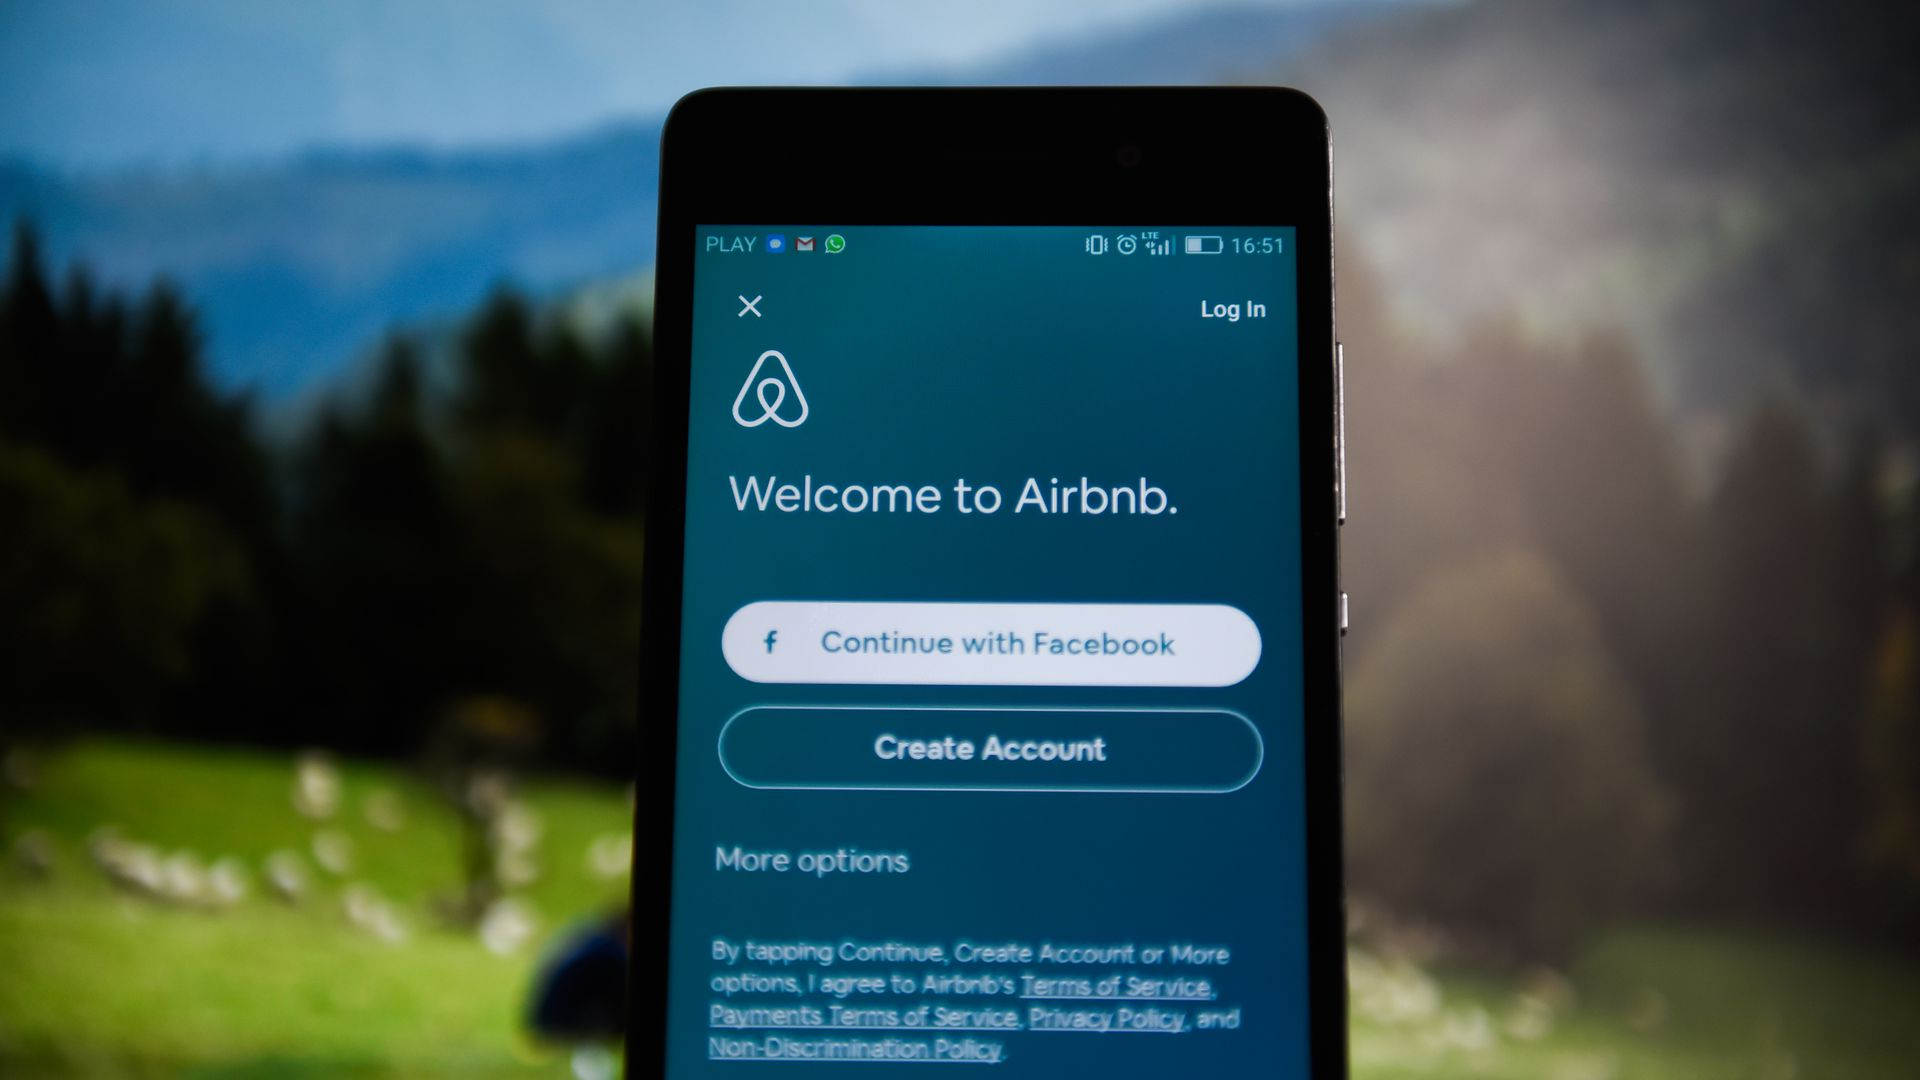 A phone with the airbnb app opened.